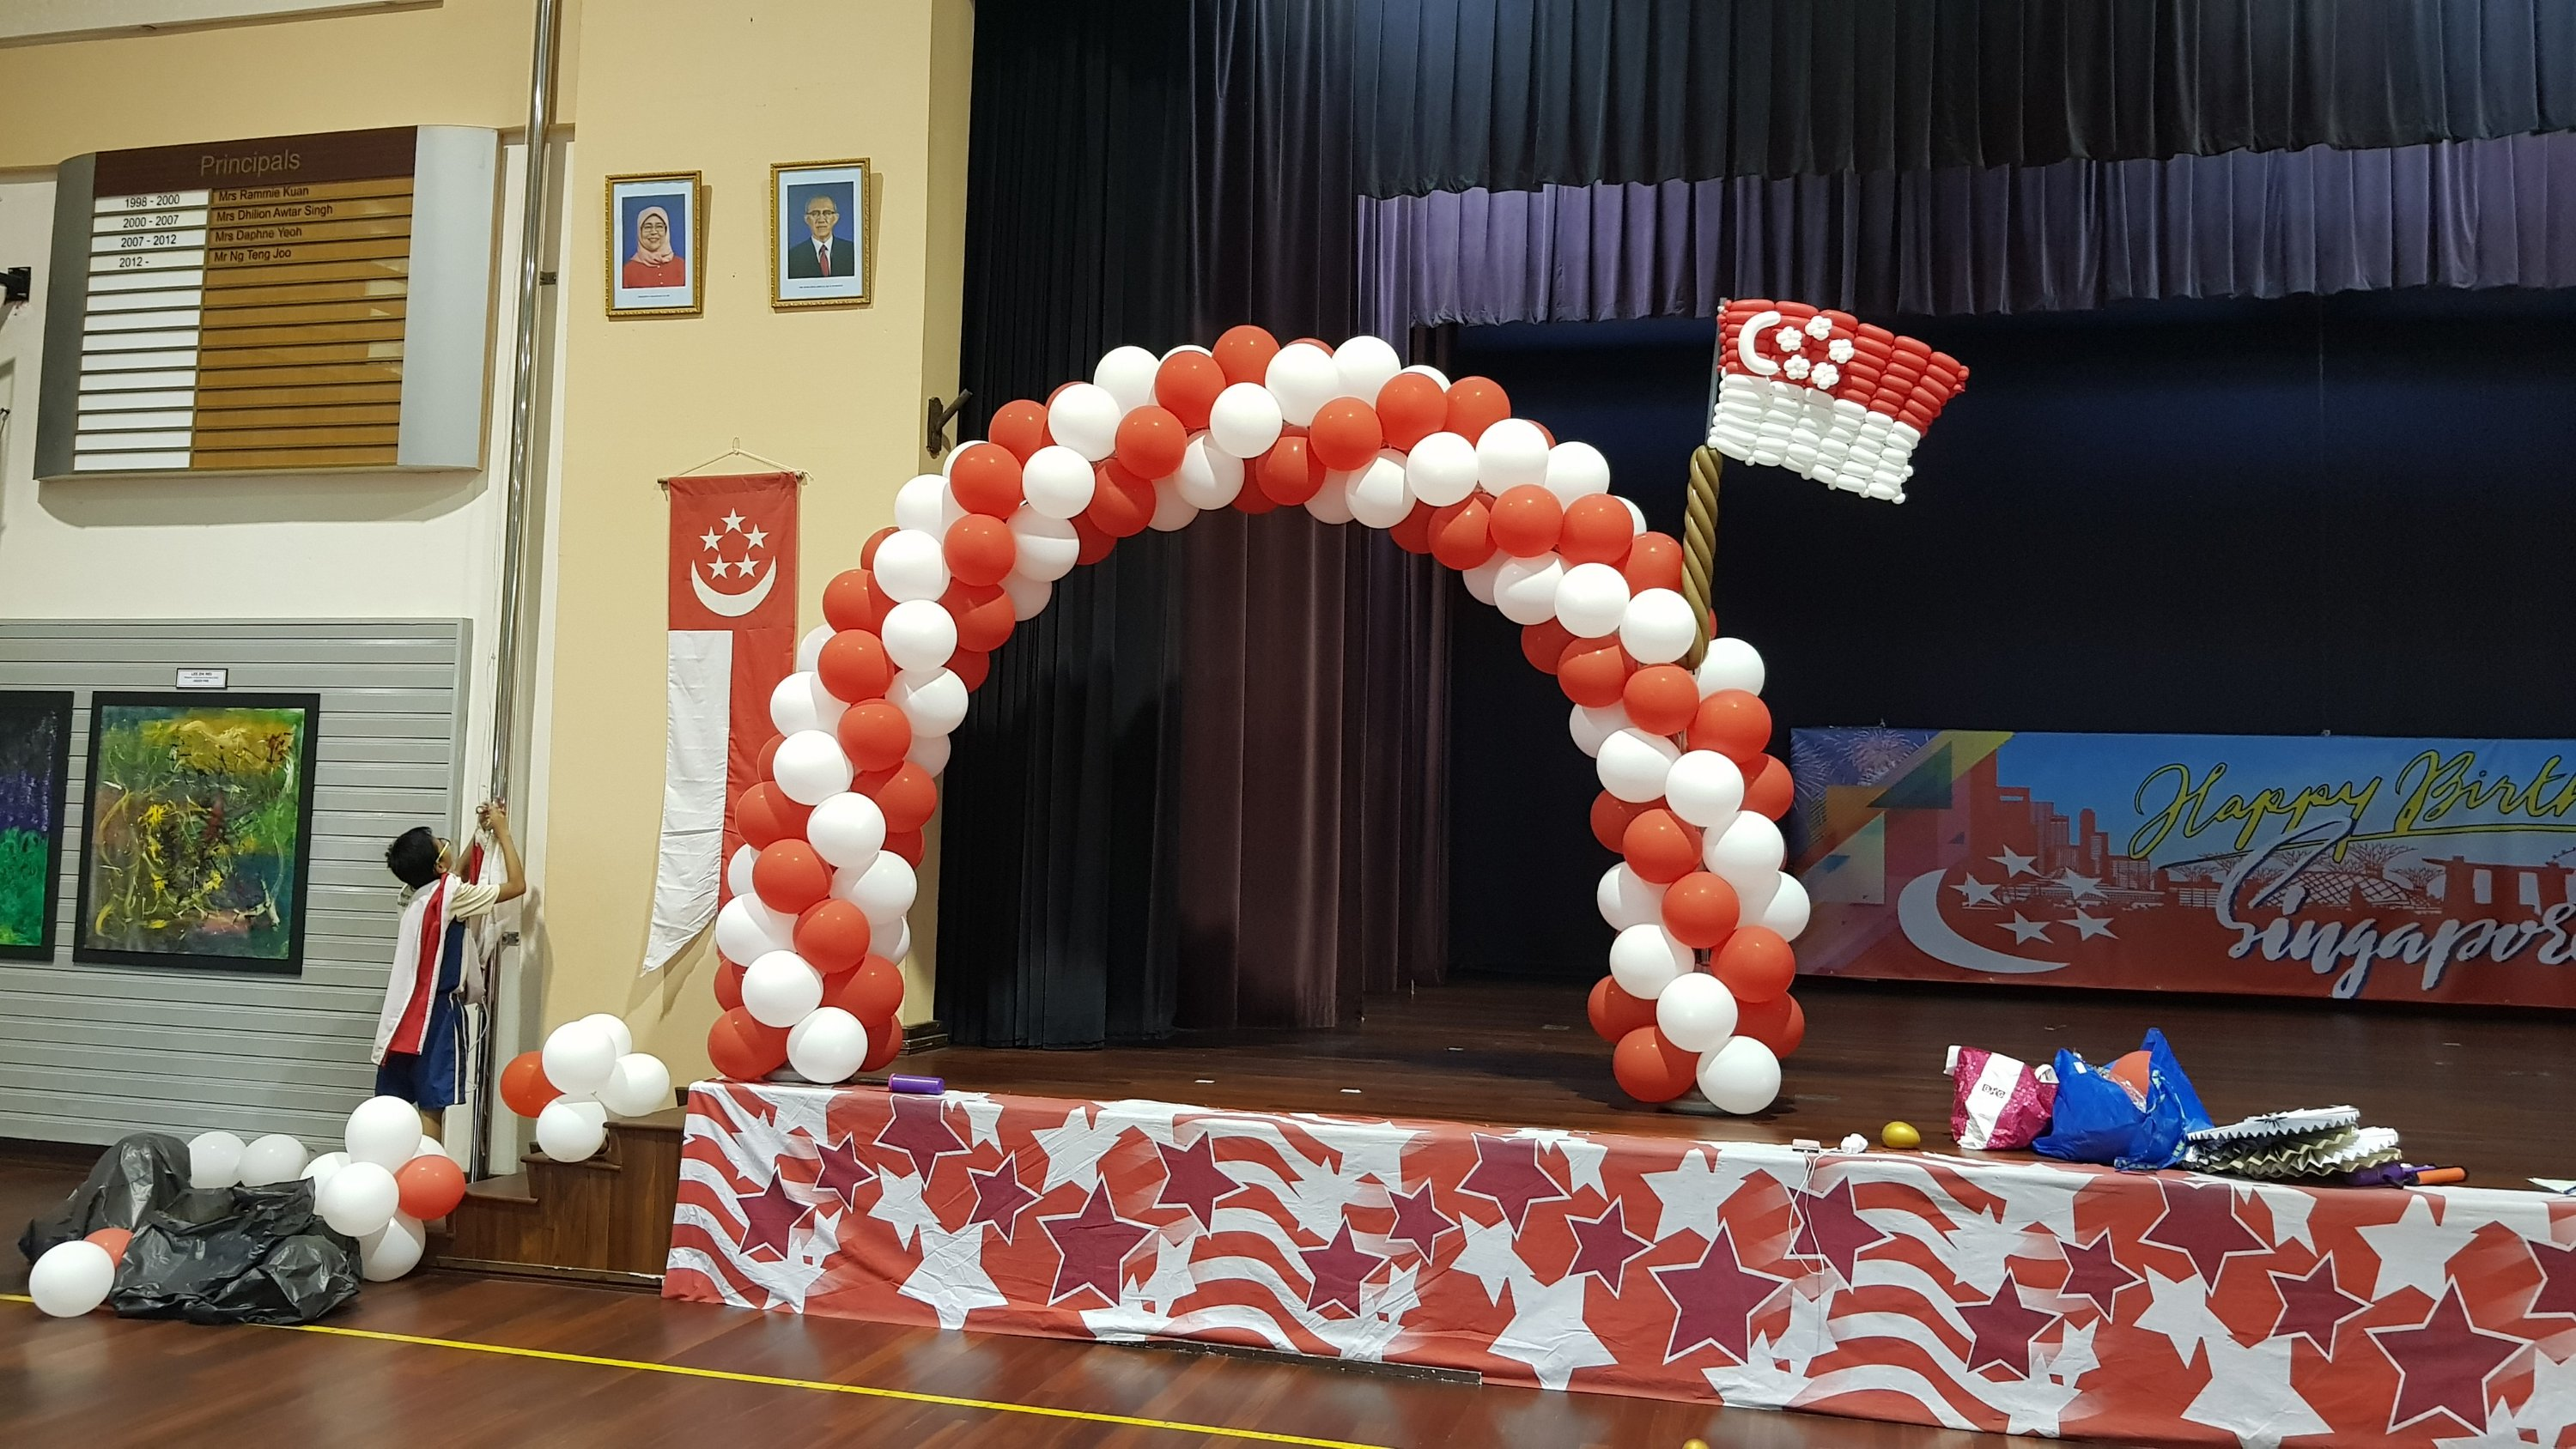 , Singapore national day balloon decorations!, Singapore Balloon Decoration Services - Balloon Workshop and Balloon Sculpting